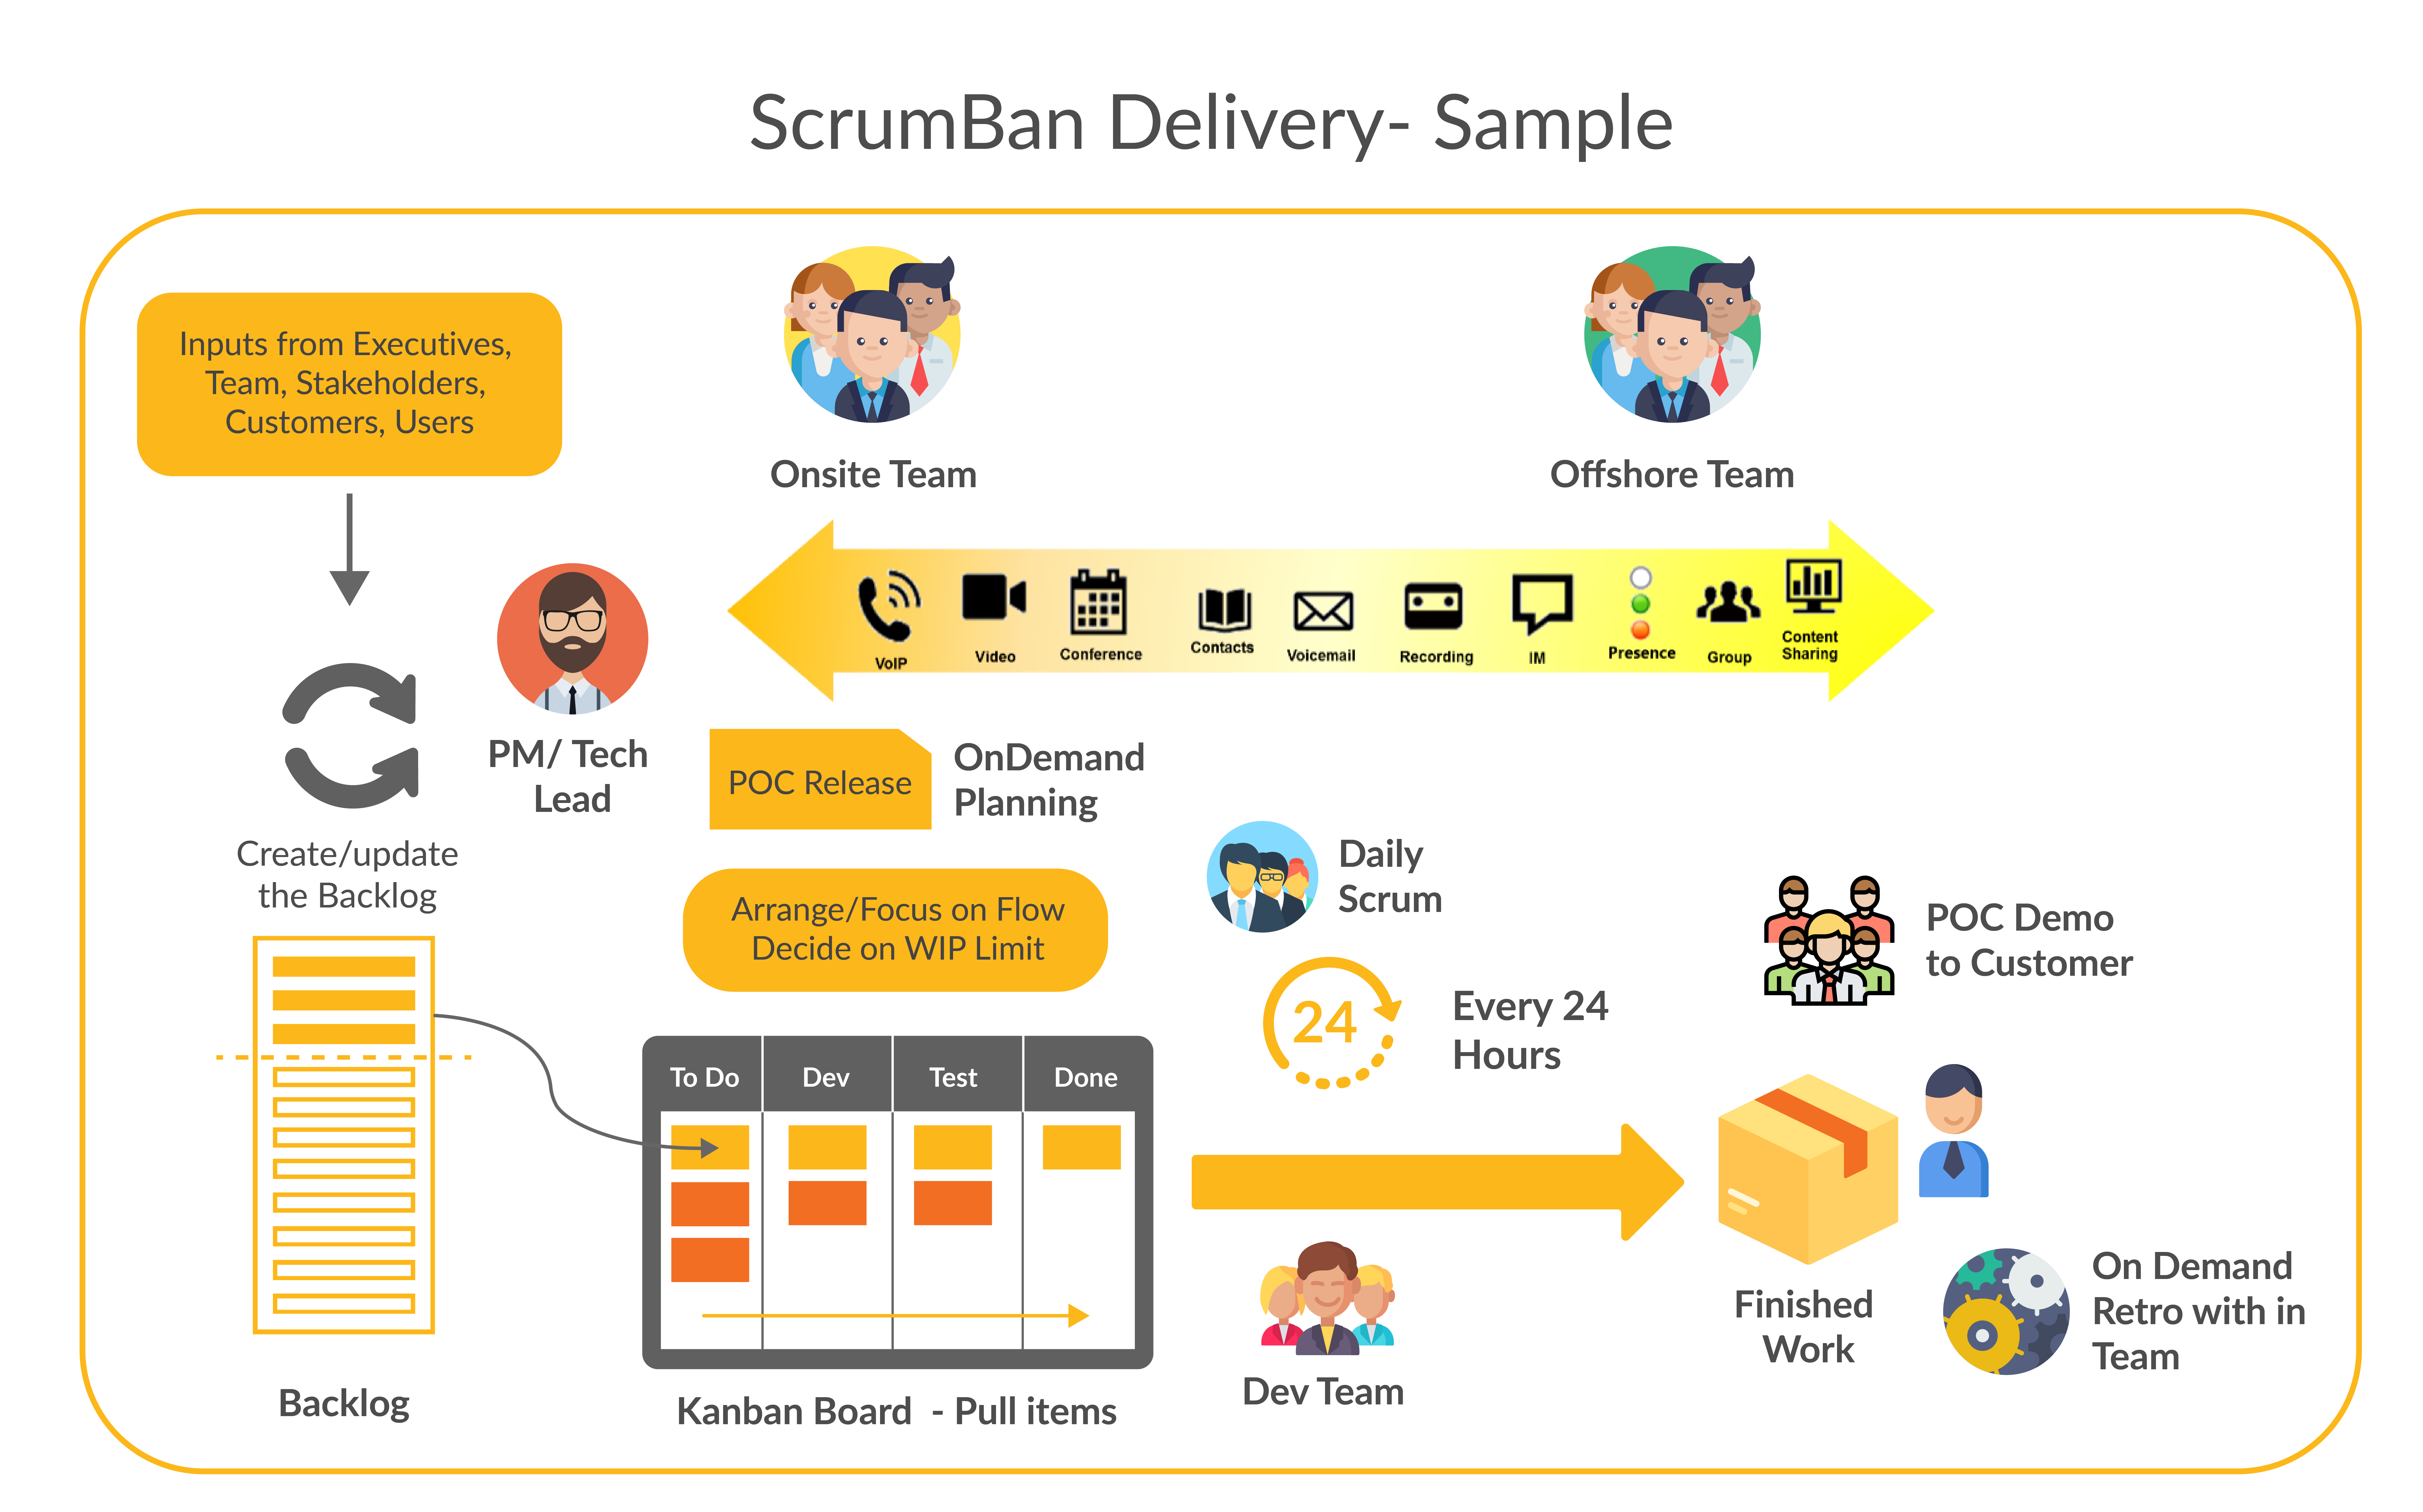 ScrumBan Delivery - Sample